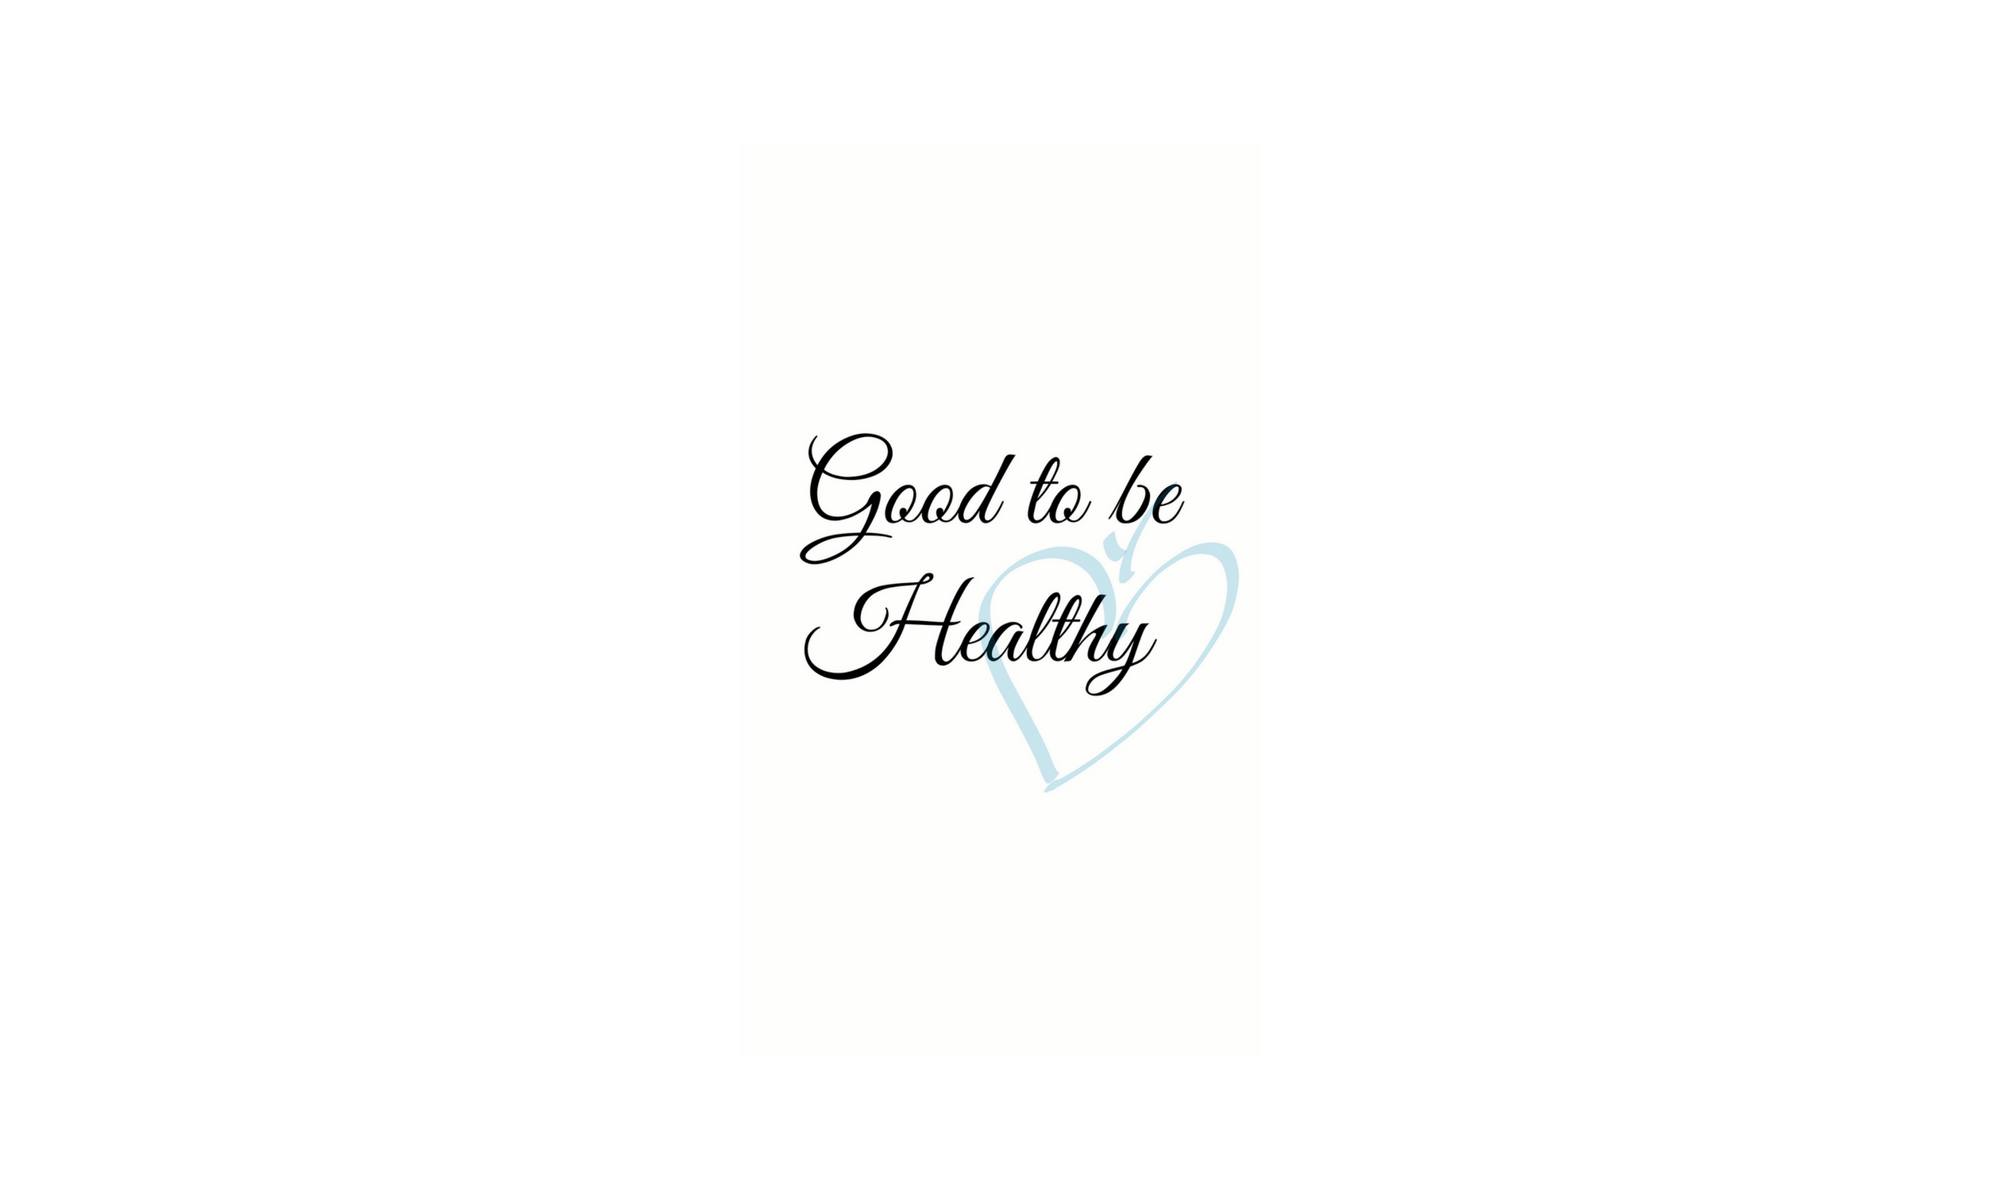 Good to be Healthy